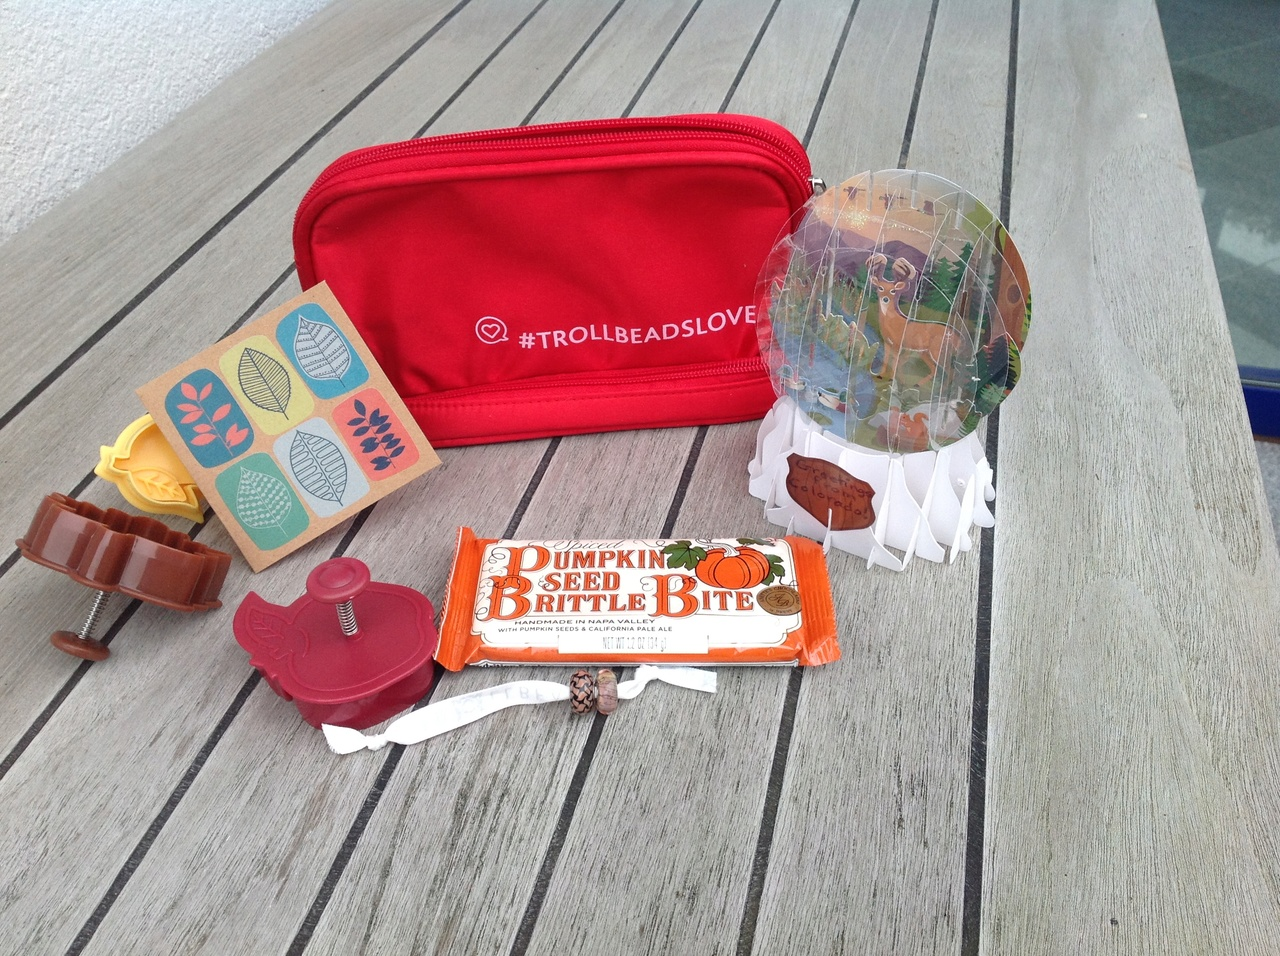 hygge parcel from Beady-eyed Image303